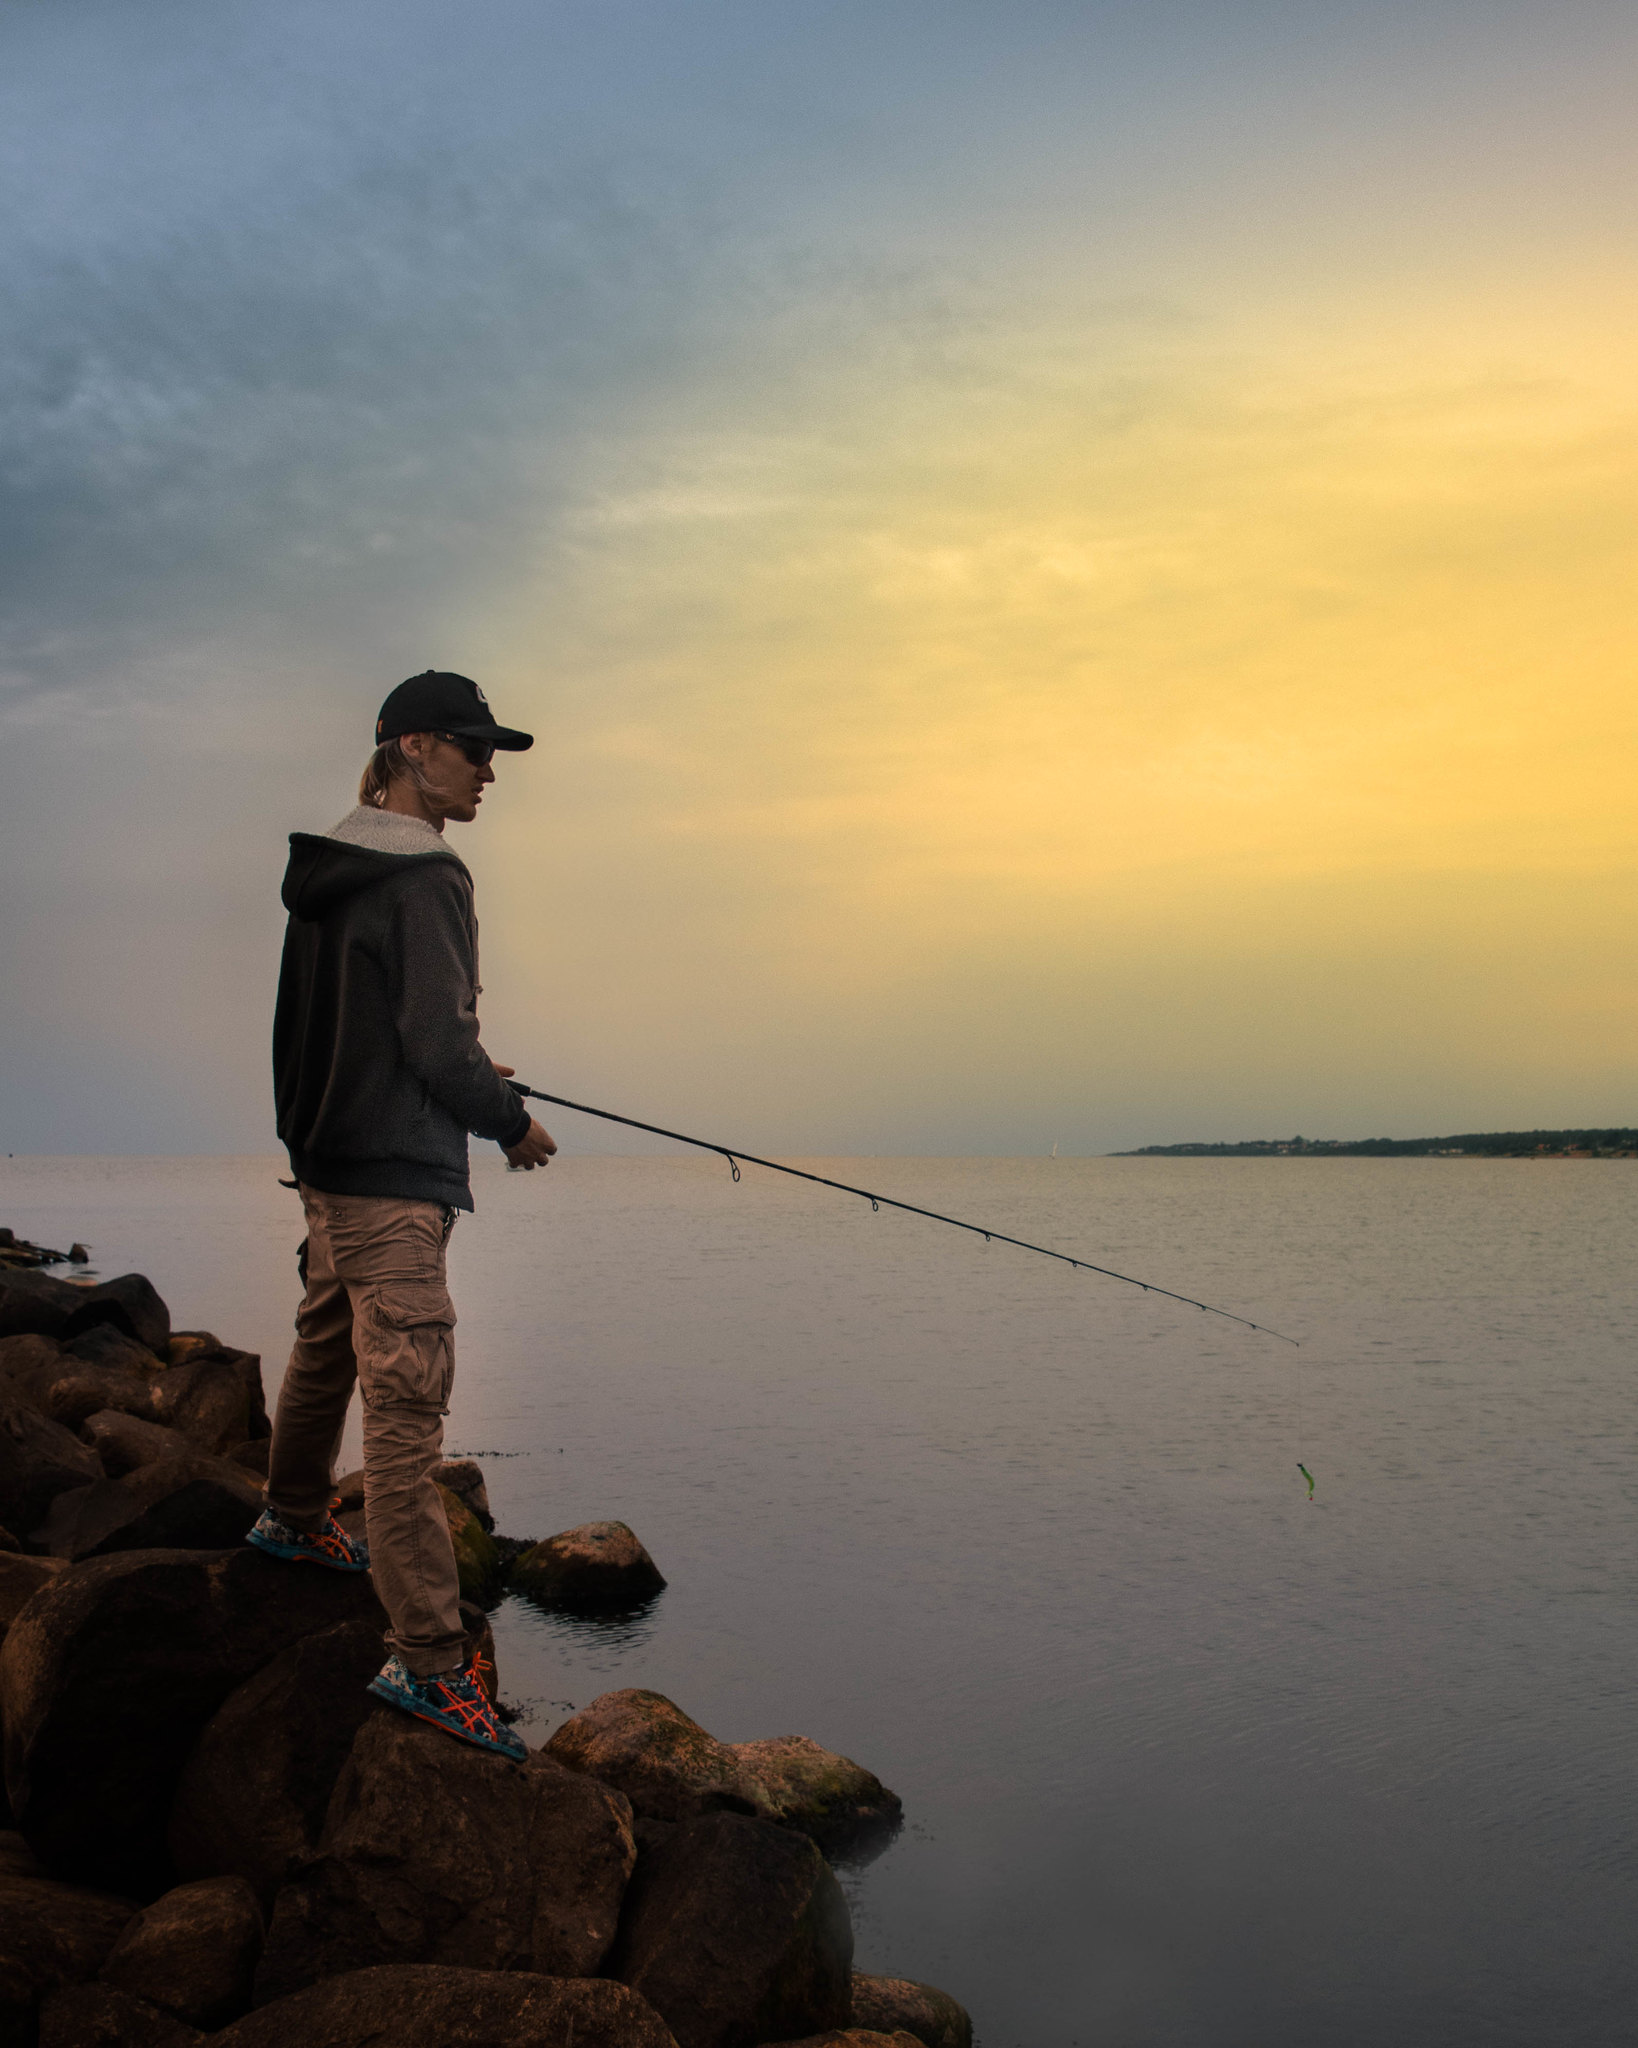 fishing evening light.jpg